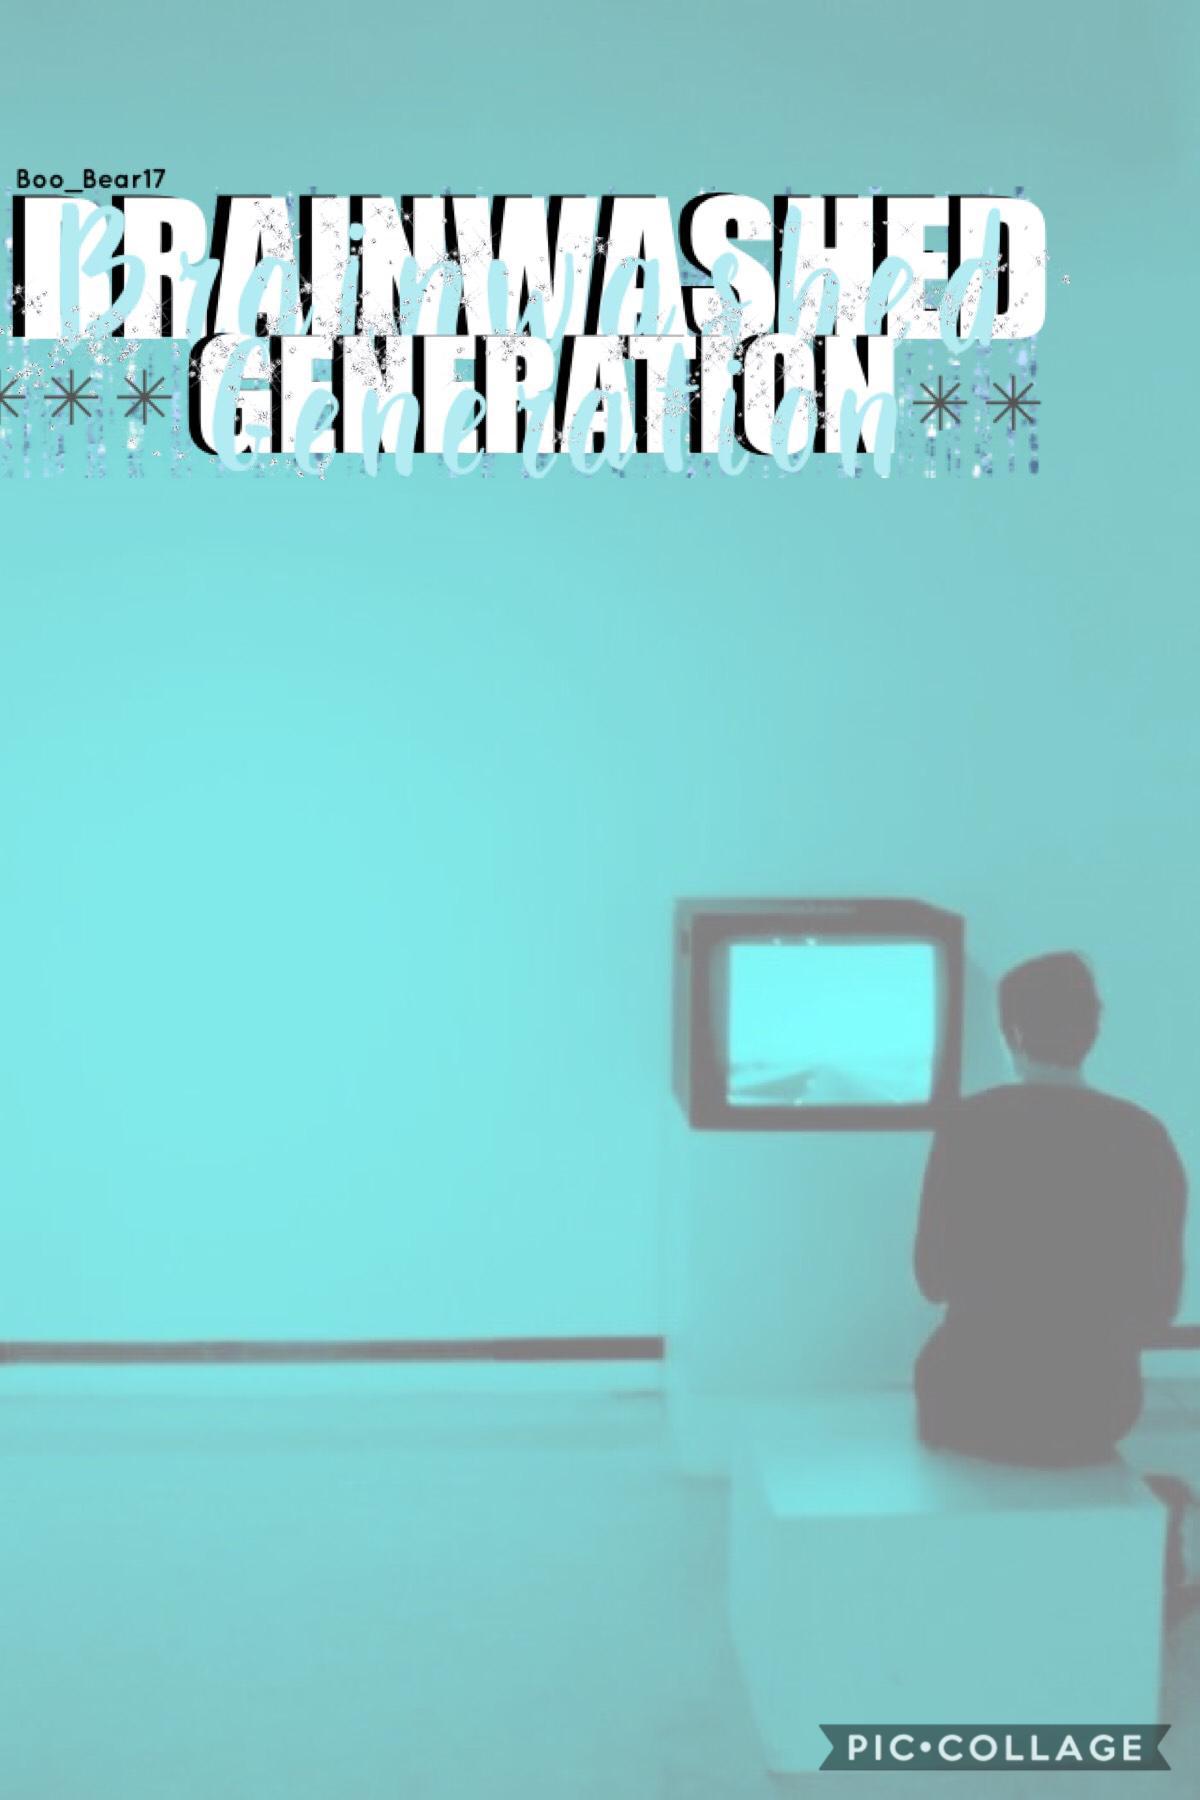 🤖brainwashed generation🤖 •so my band is asking for soloists who'd like to perform at an upcoming event, should I? I'm scared •song rec: 11 mins - Halsey, YUNGBLUD, and Travis